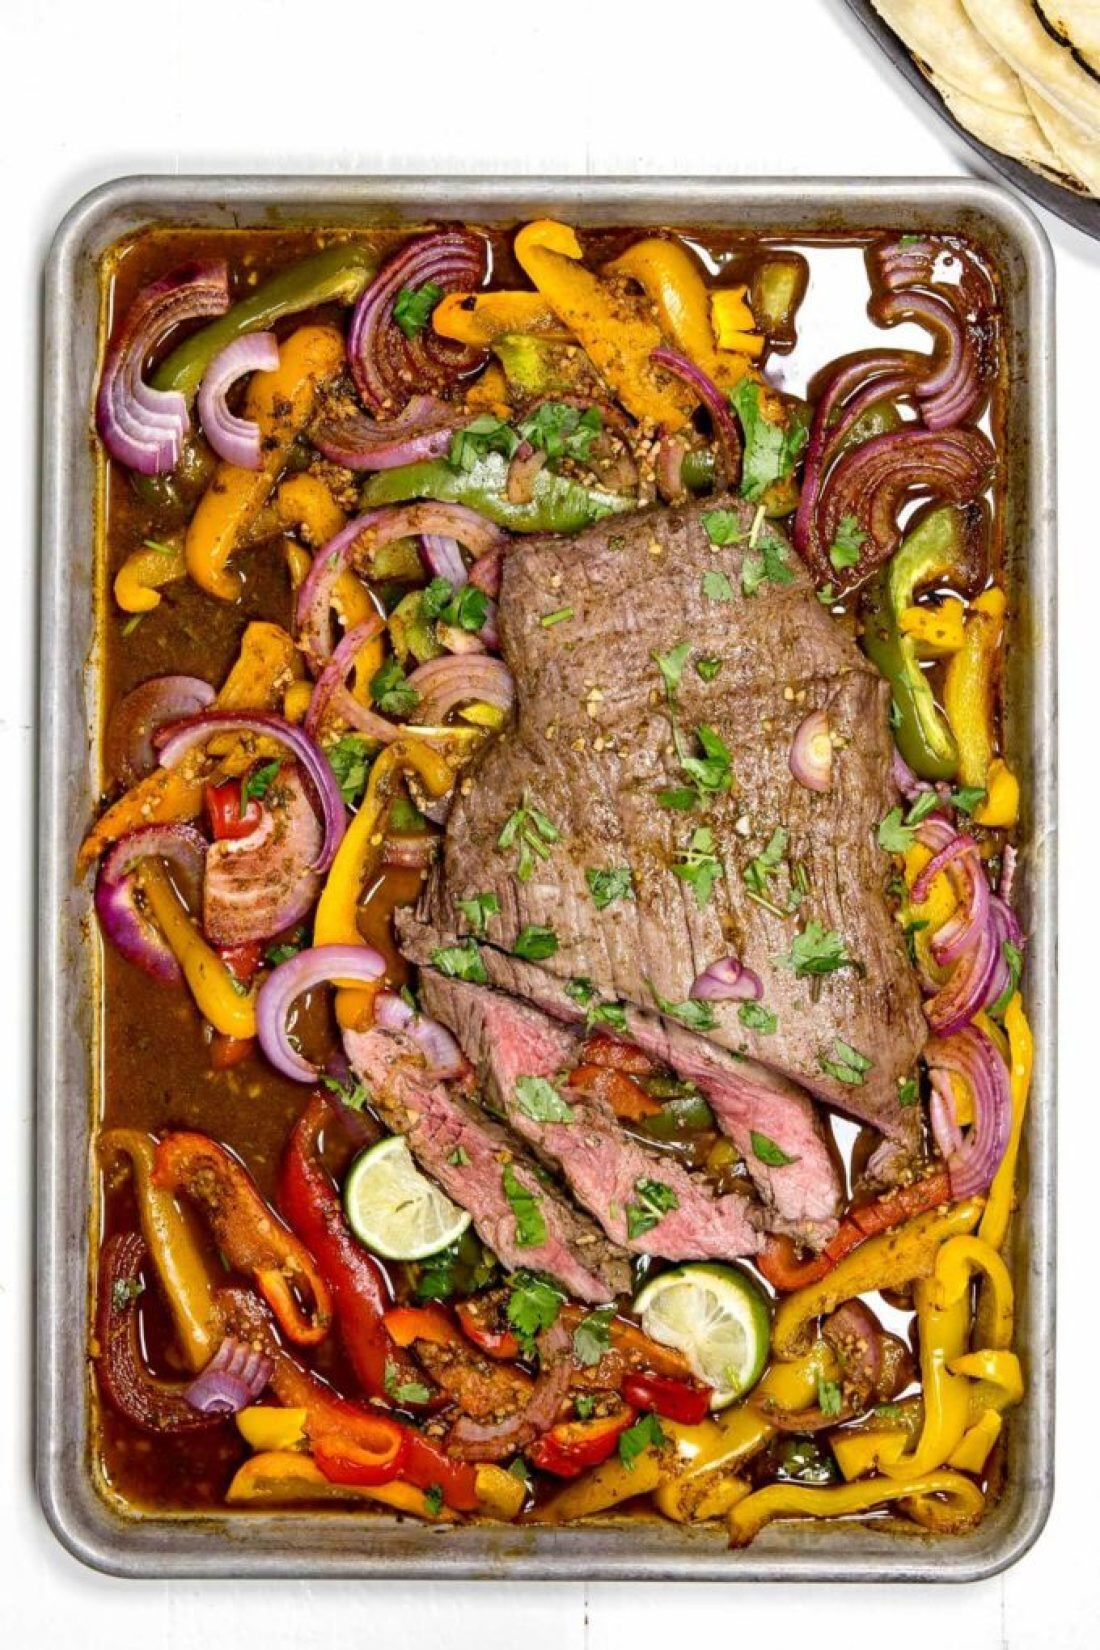 Sheet pan flank steak fajitas are packed with flavor and the perfect meal. My husband said this was his favorite thing I have ever made.